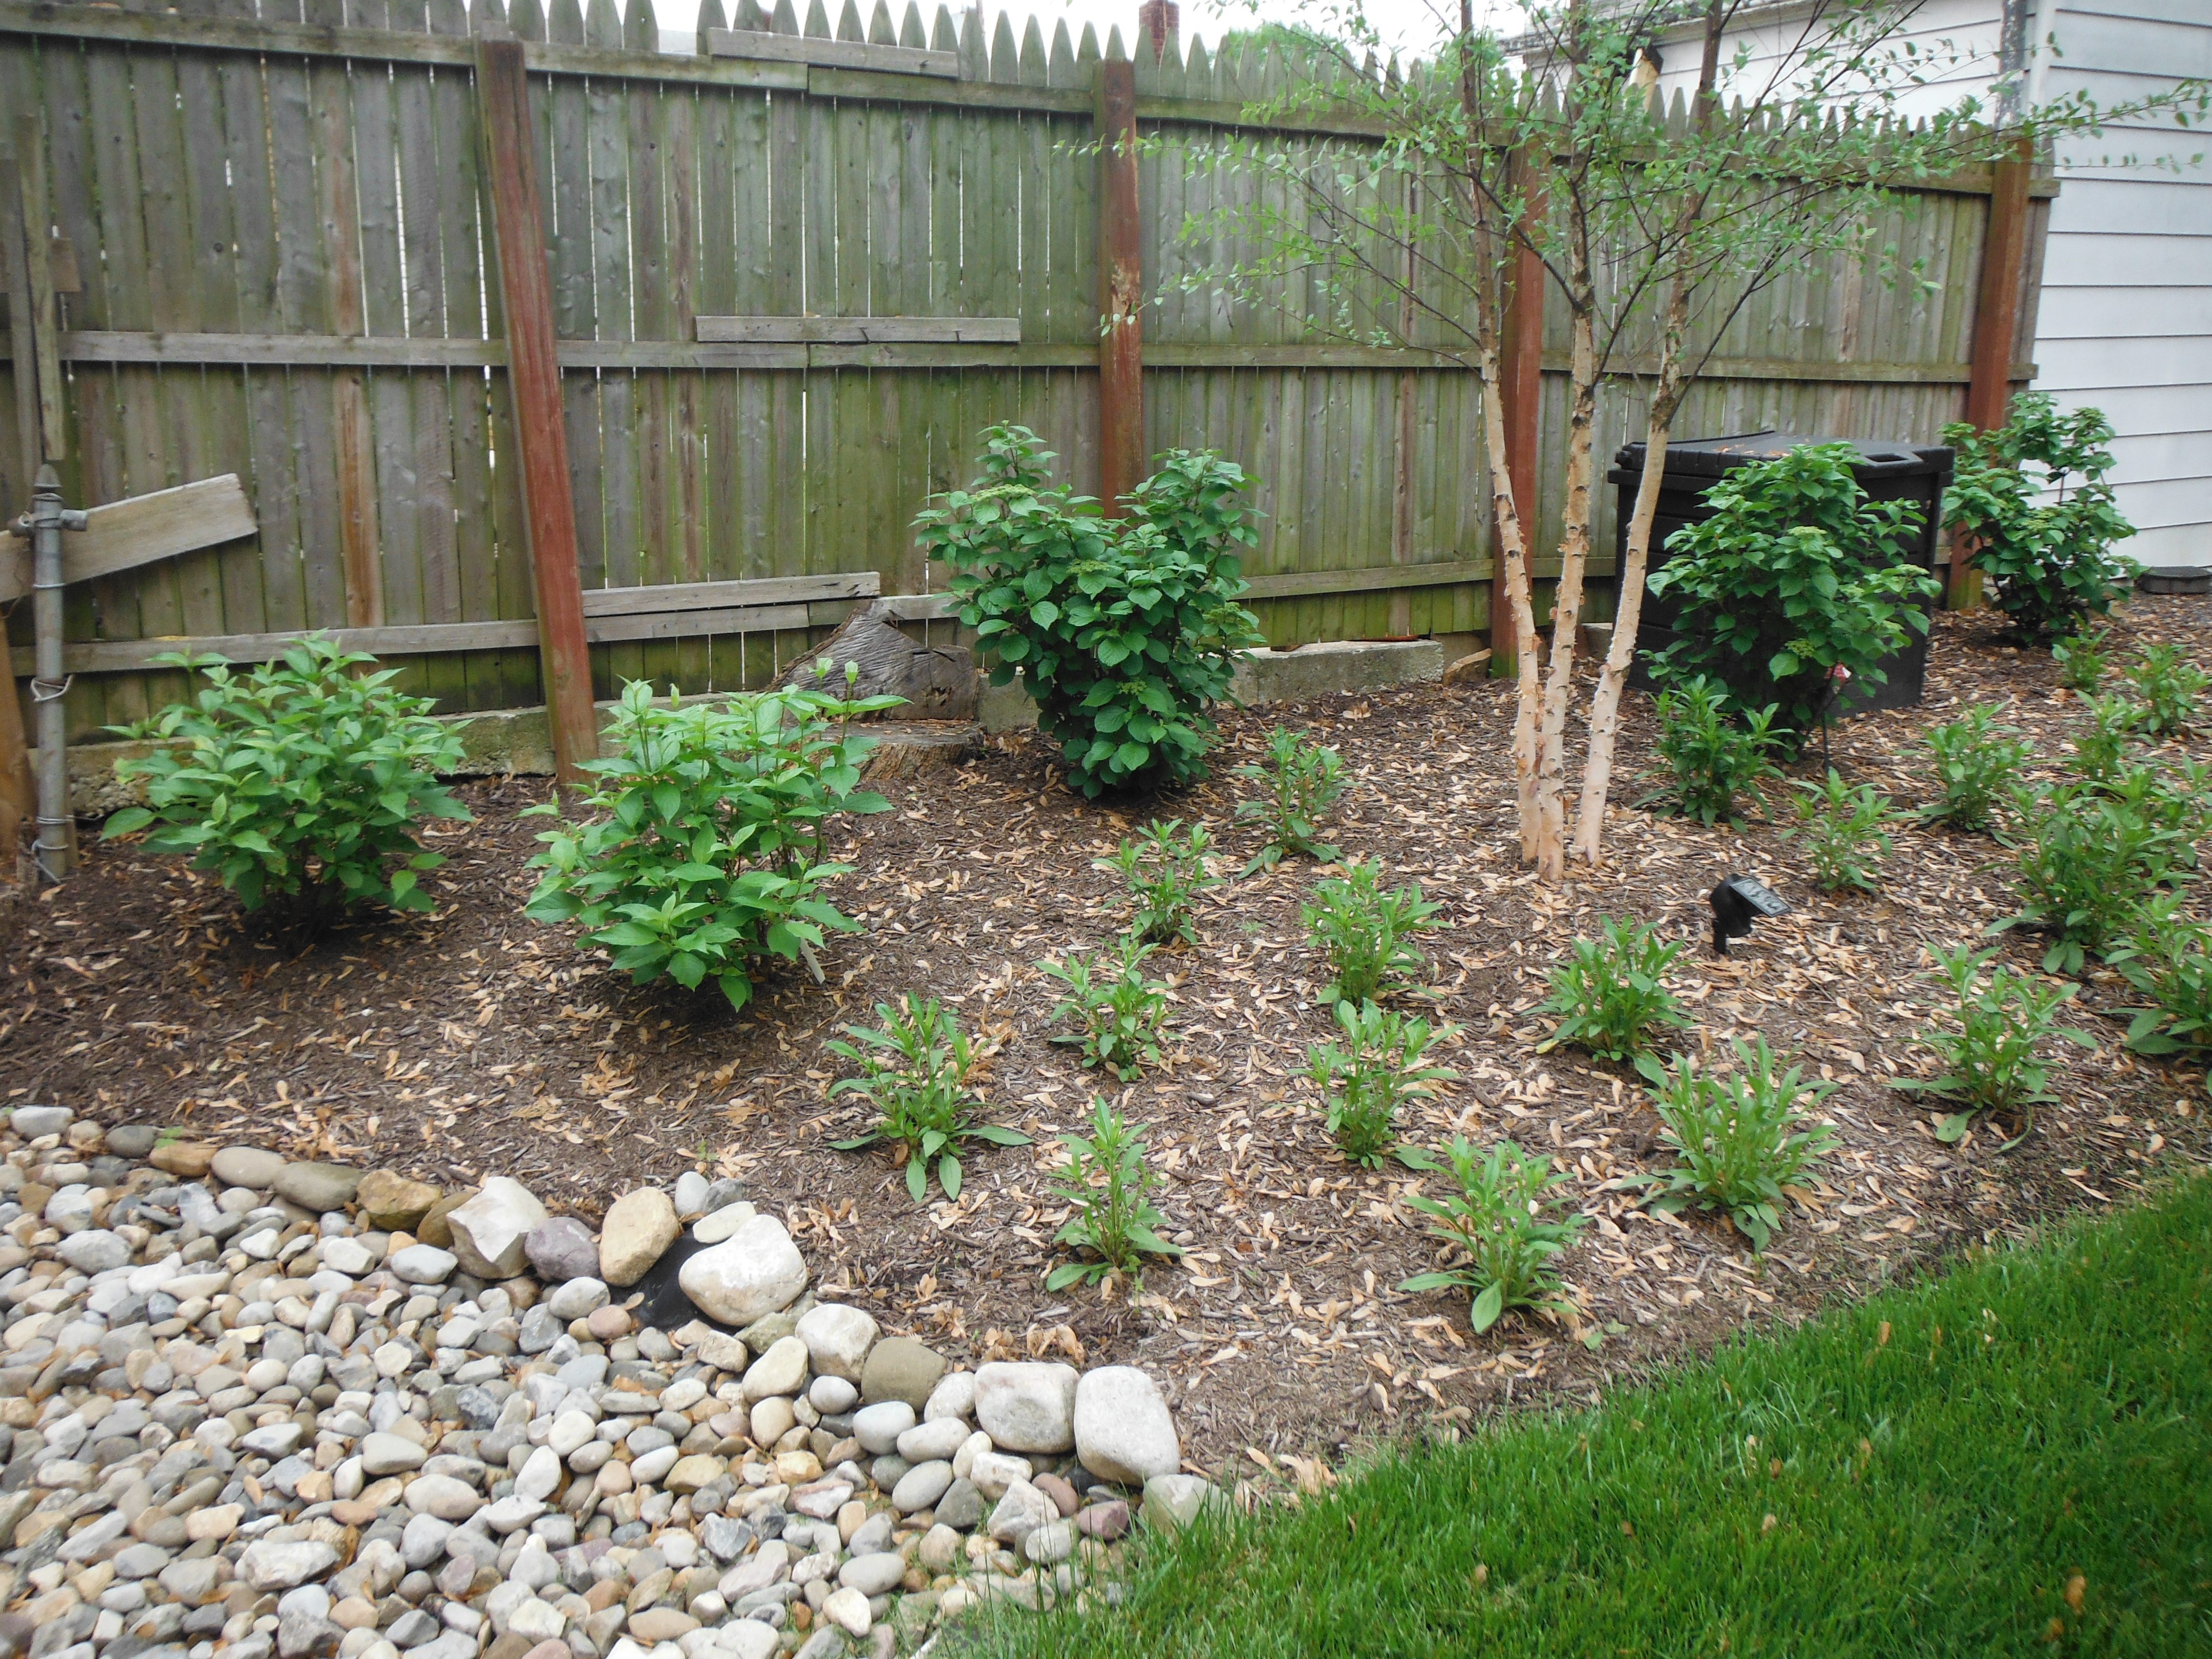 Native plants, shrubs, and trees in a backyard garden